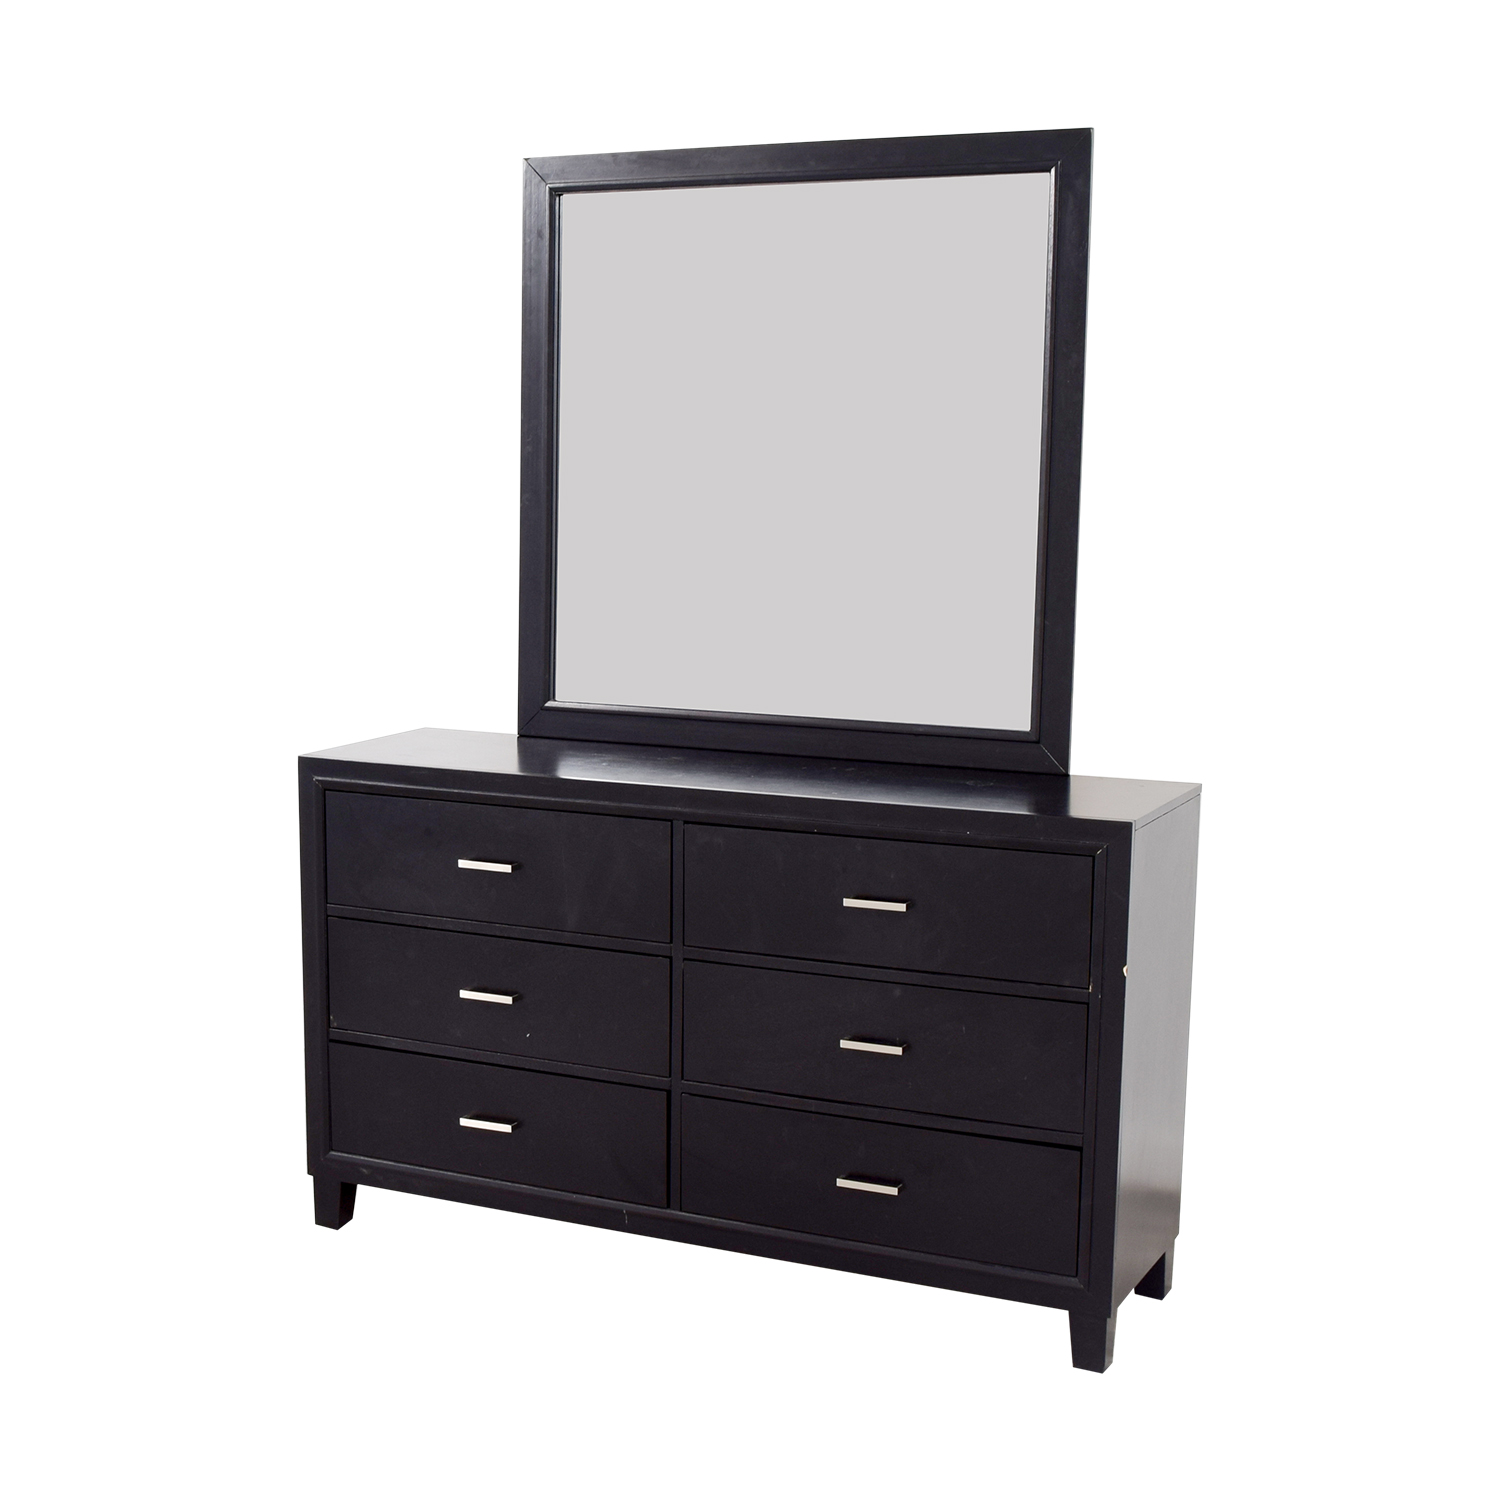 Six-Drawer Dresser with Mirror on sale